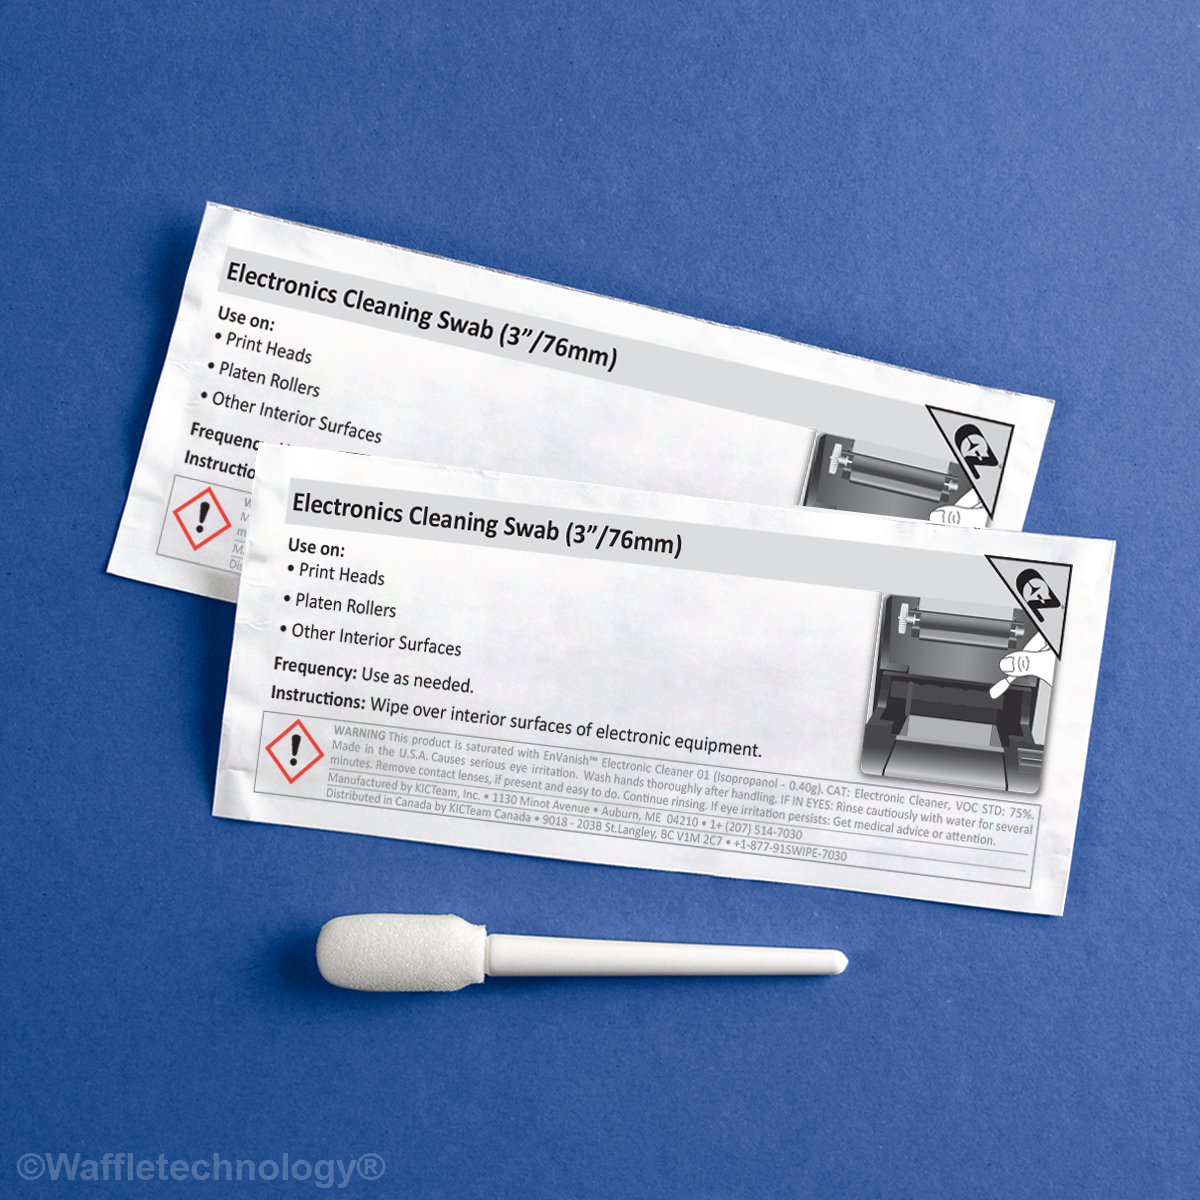 Electronics Cleaning Swab (3in/76mm)